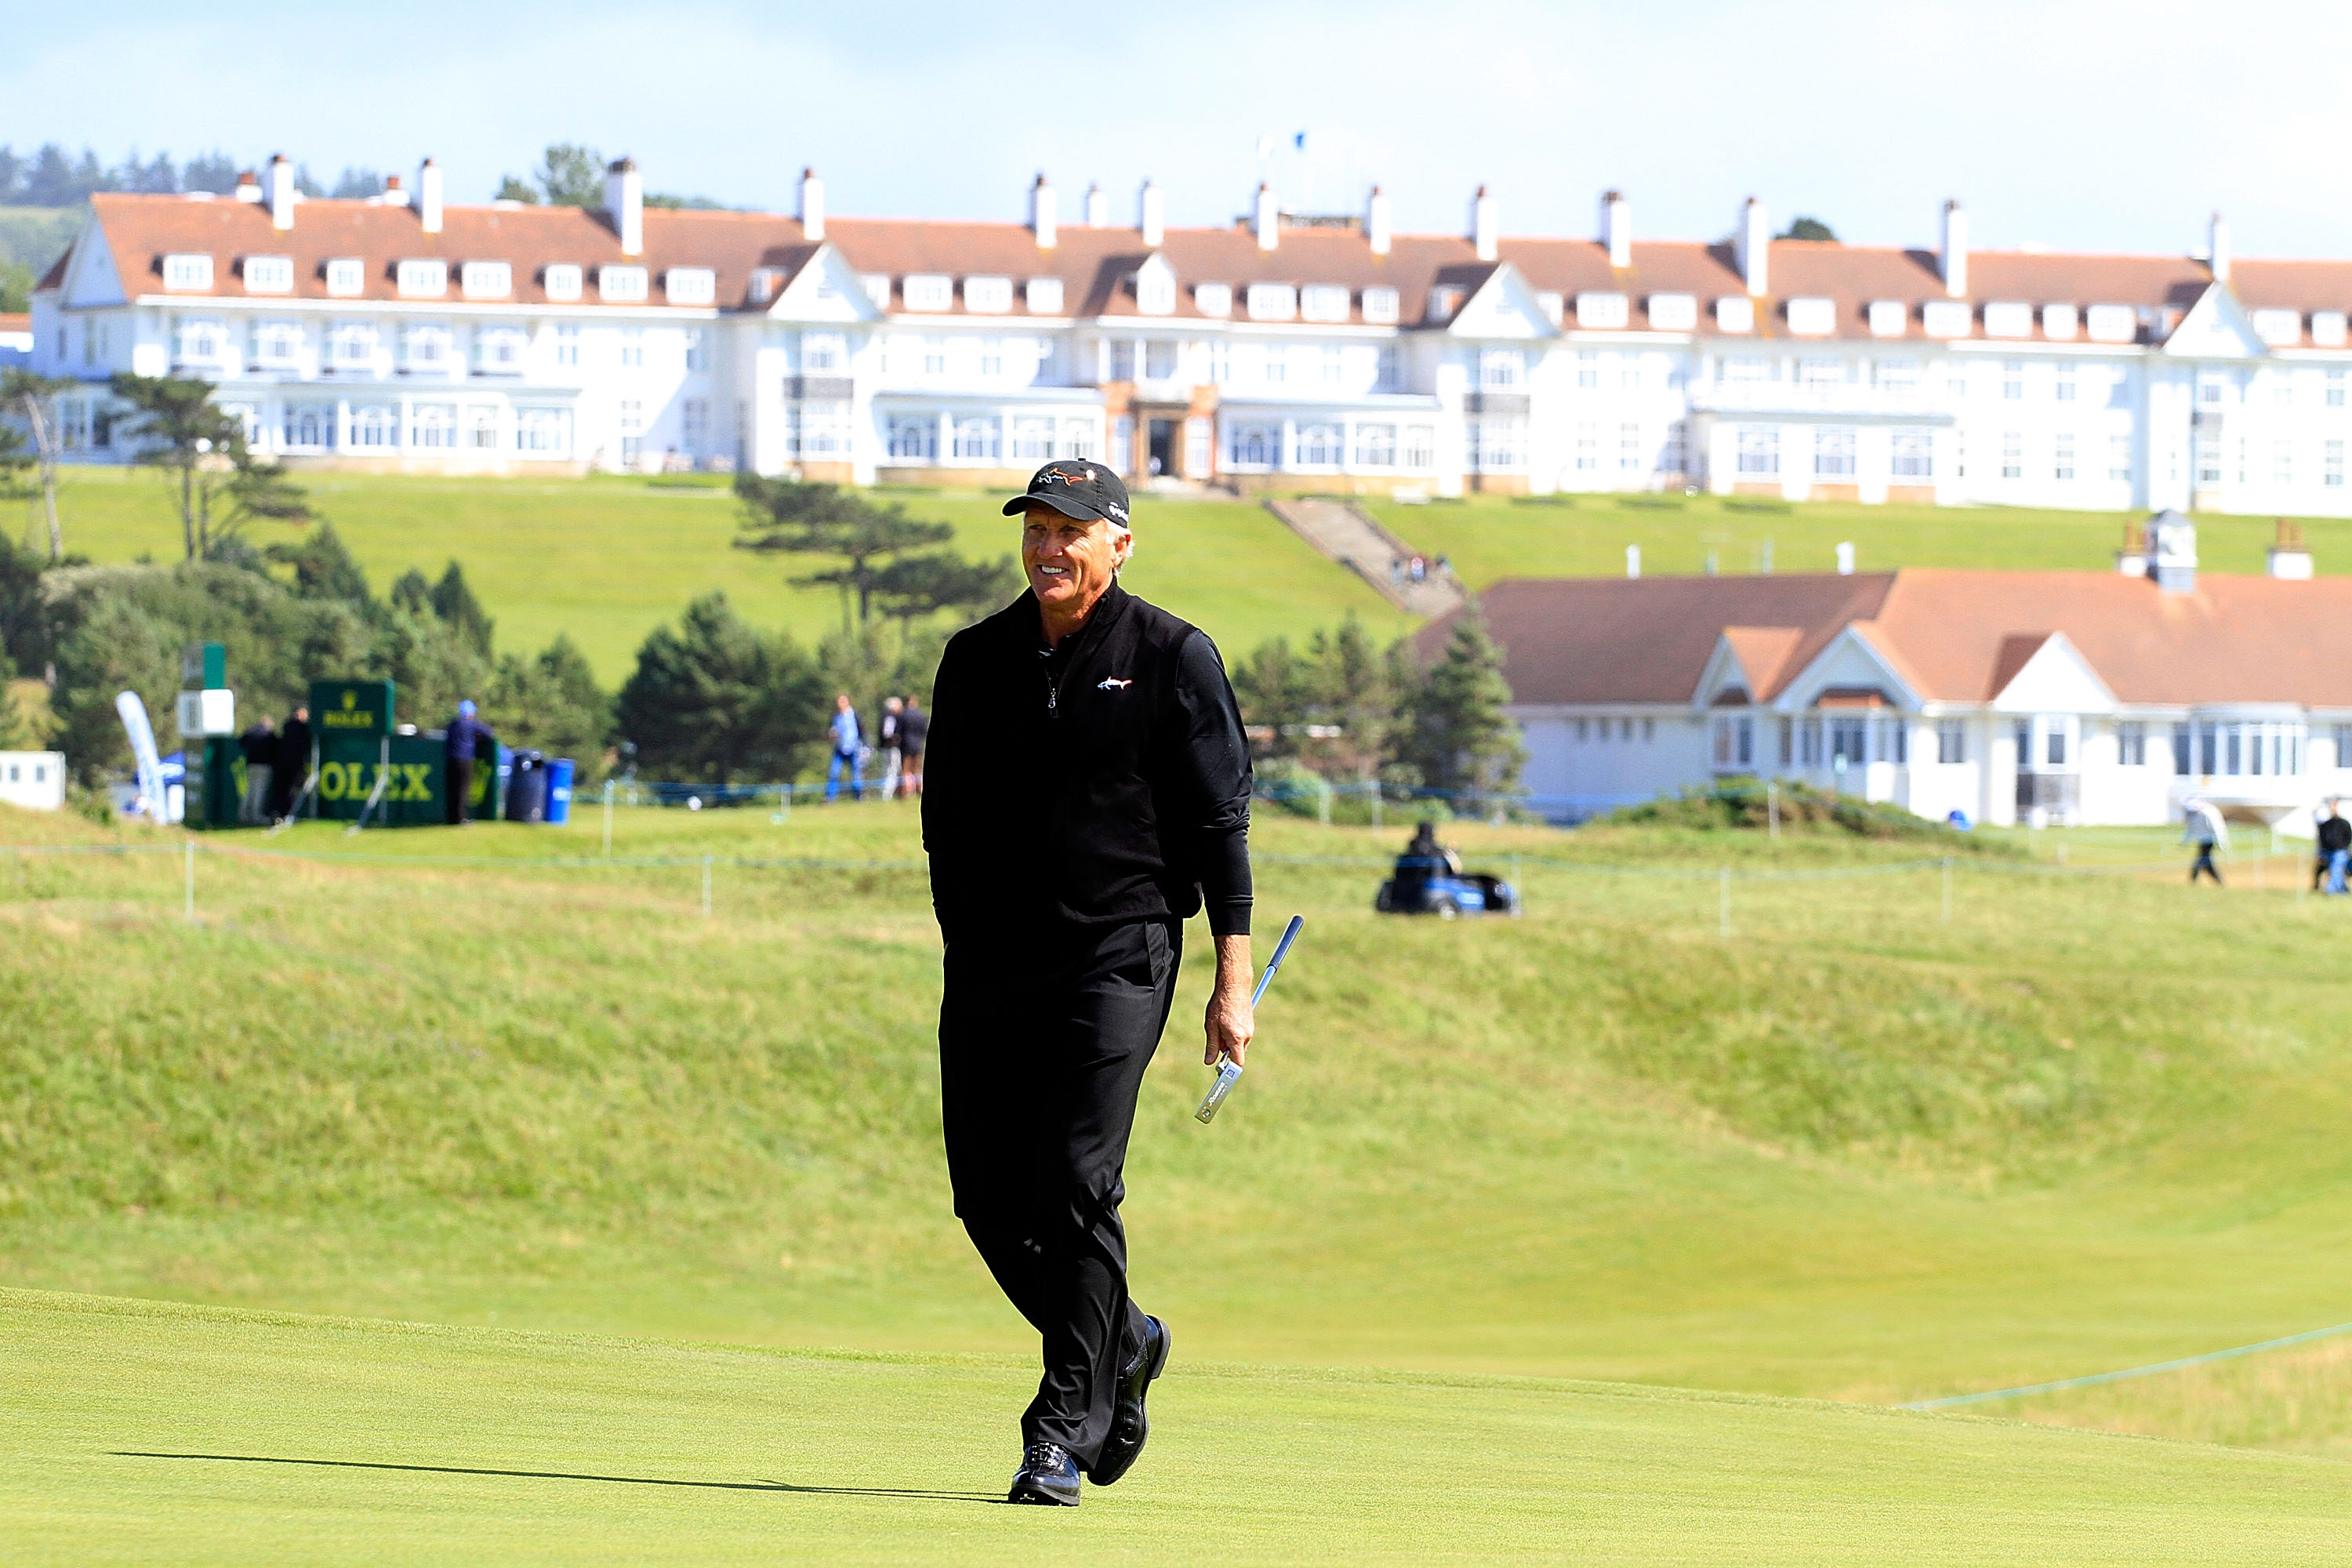 TURNBERRY, SCOTLAND - JULY 27:  Greg Norman of Australia in action on the 6th green during the second round of the Senior Open Championship played over the Ailsa Course on July 27, 2012 in Turnberry, United Kingdom.  (Photo by Phil Inglis/Getty Images)